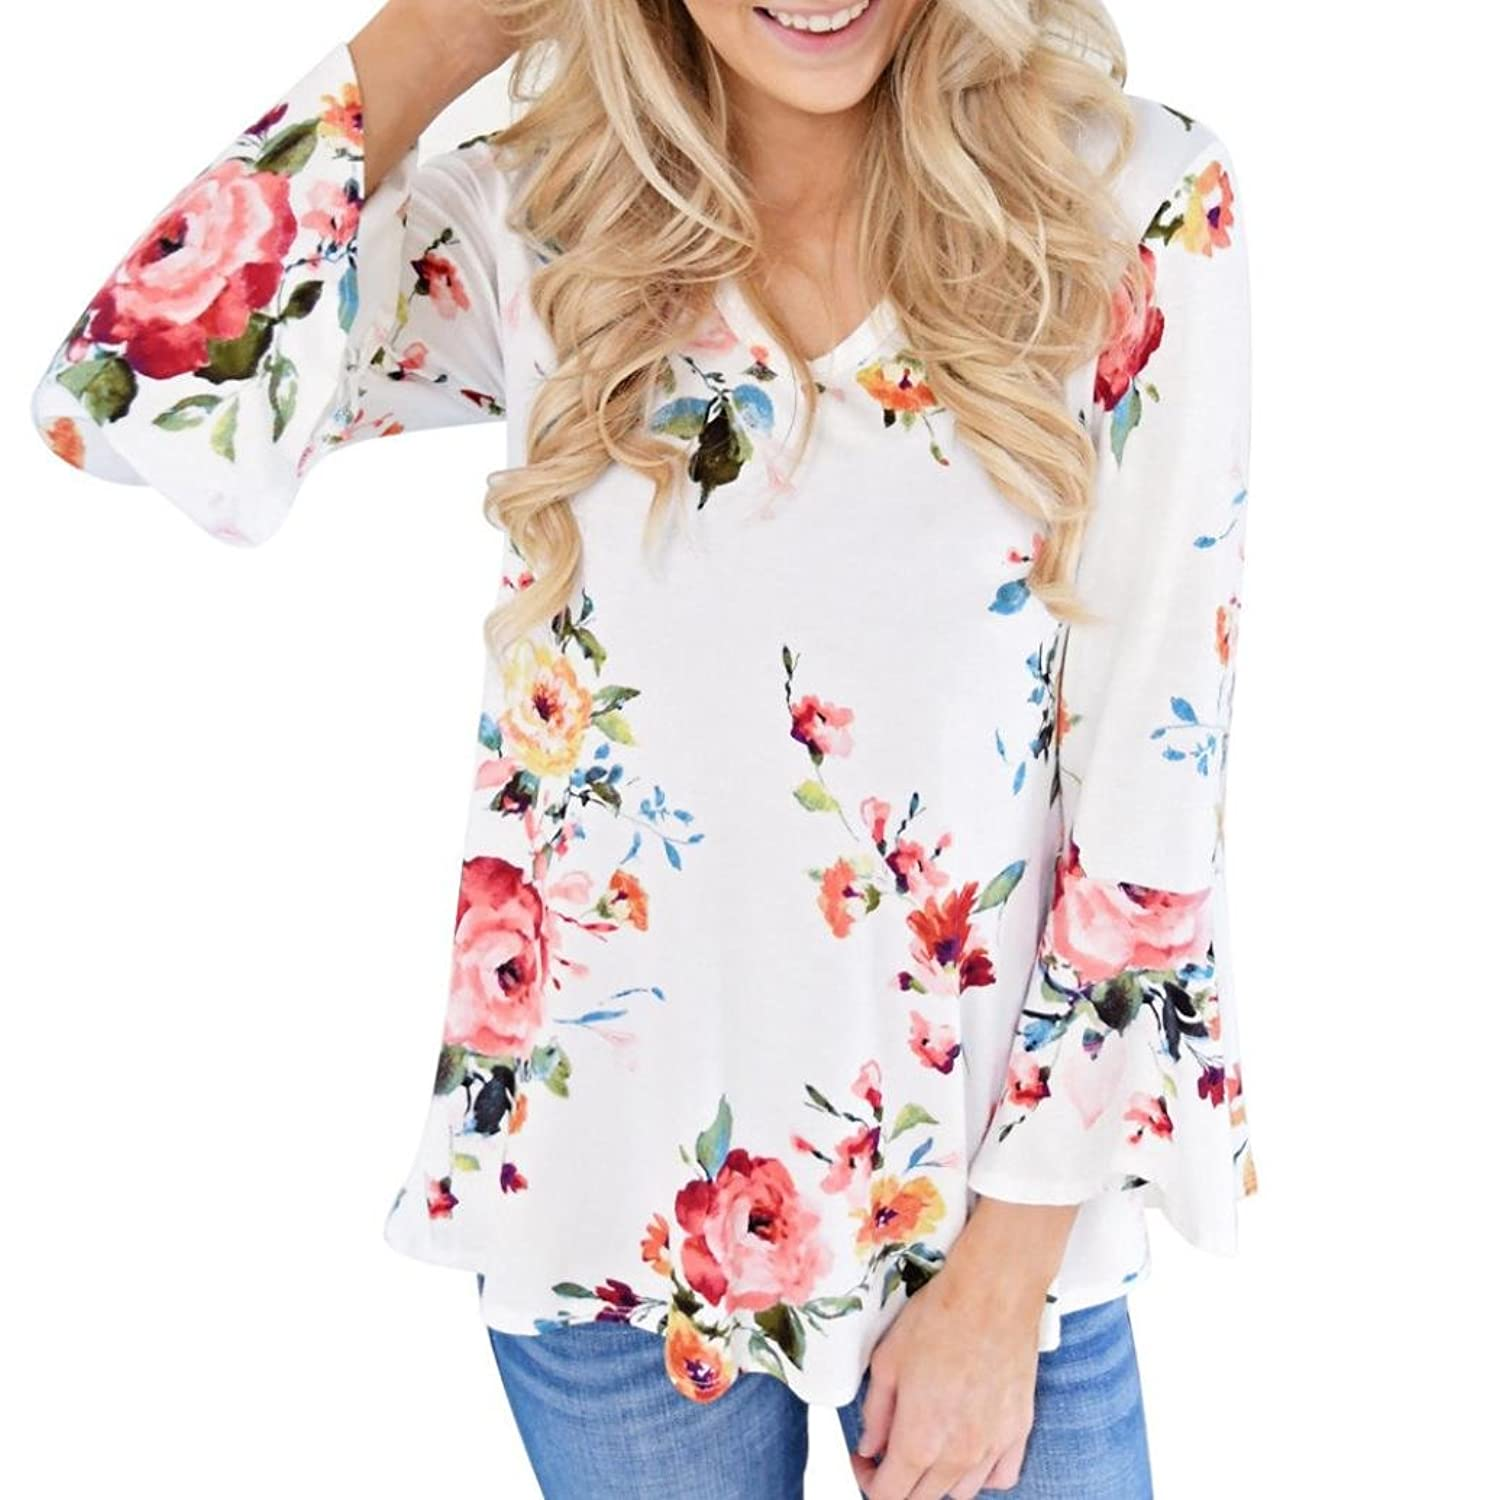 Newonesun Blouse Blouse,Newonesun Women Spring Casual Floral Printing Long Flare Sleeve Tops T Shirt by Newonesun Blouse